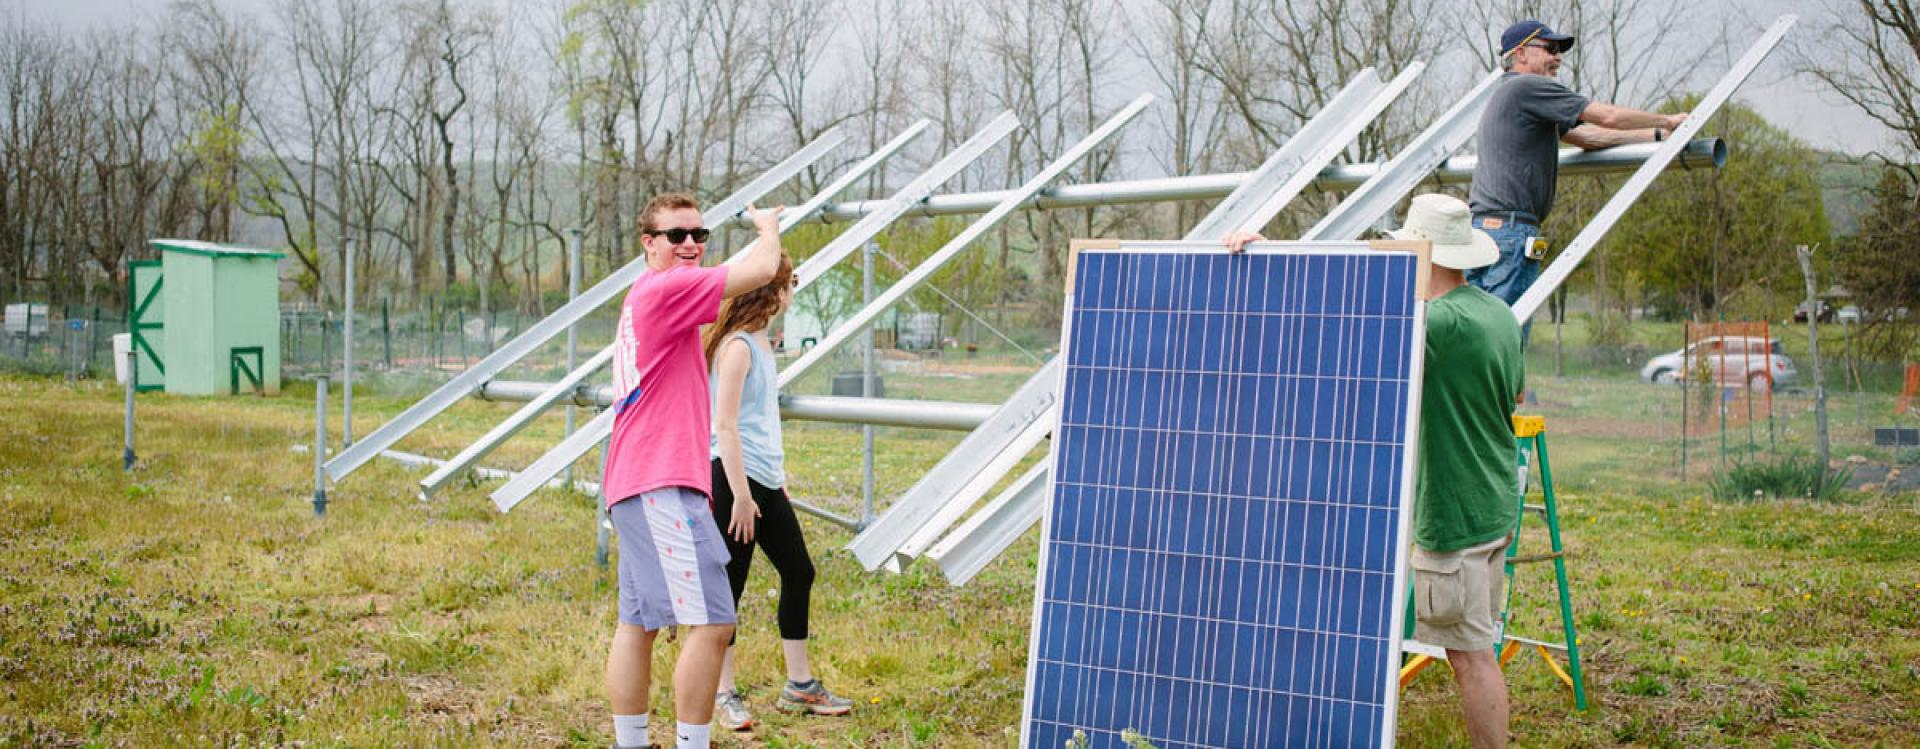 Installation of solar panels at lehigh community garden